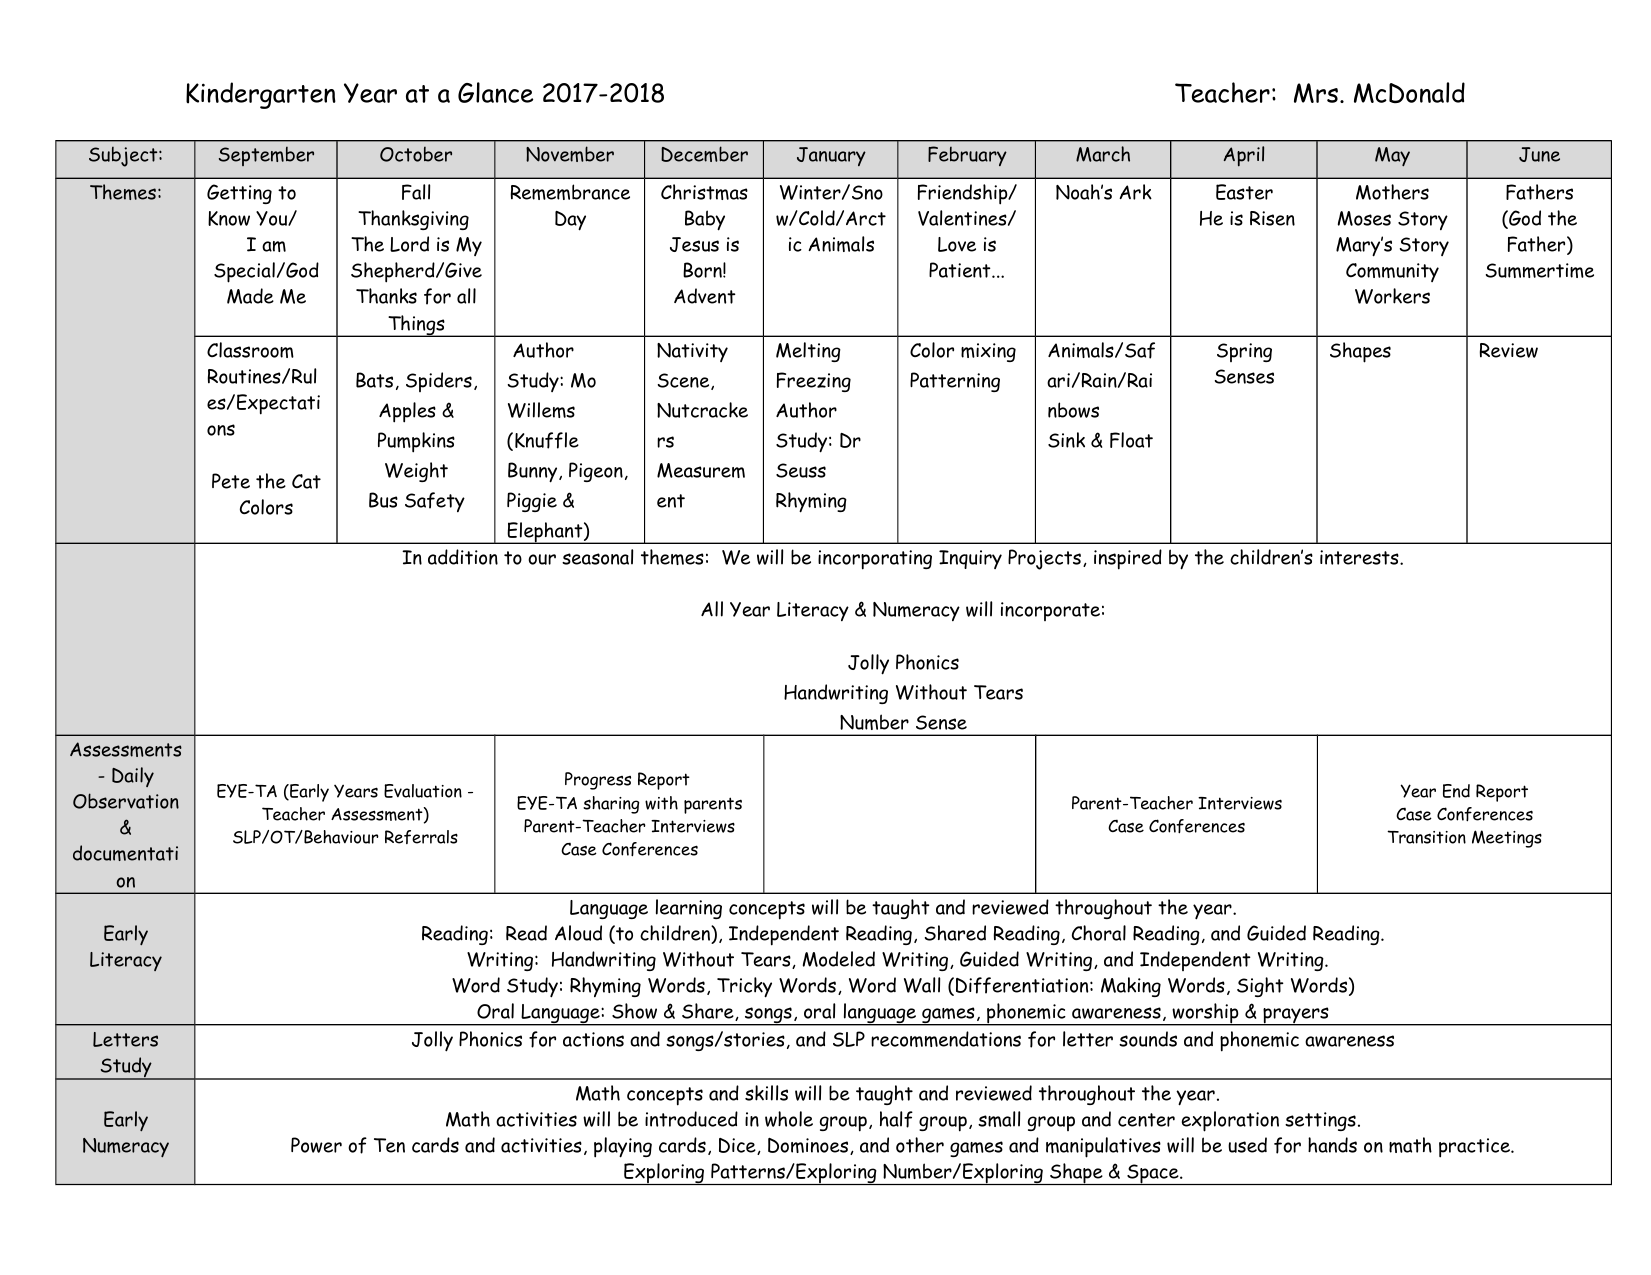 Kindergarten Year Plans Resource Preview